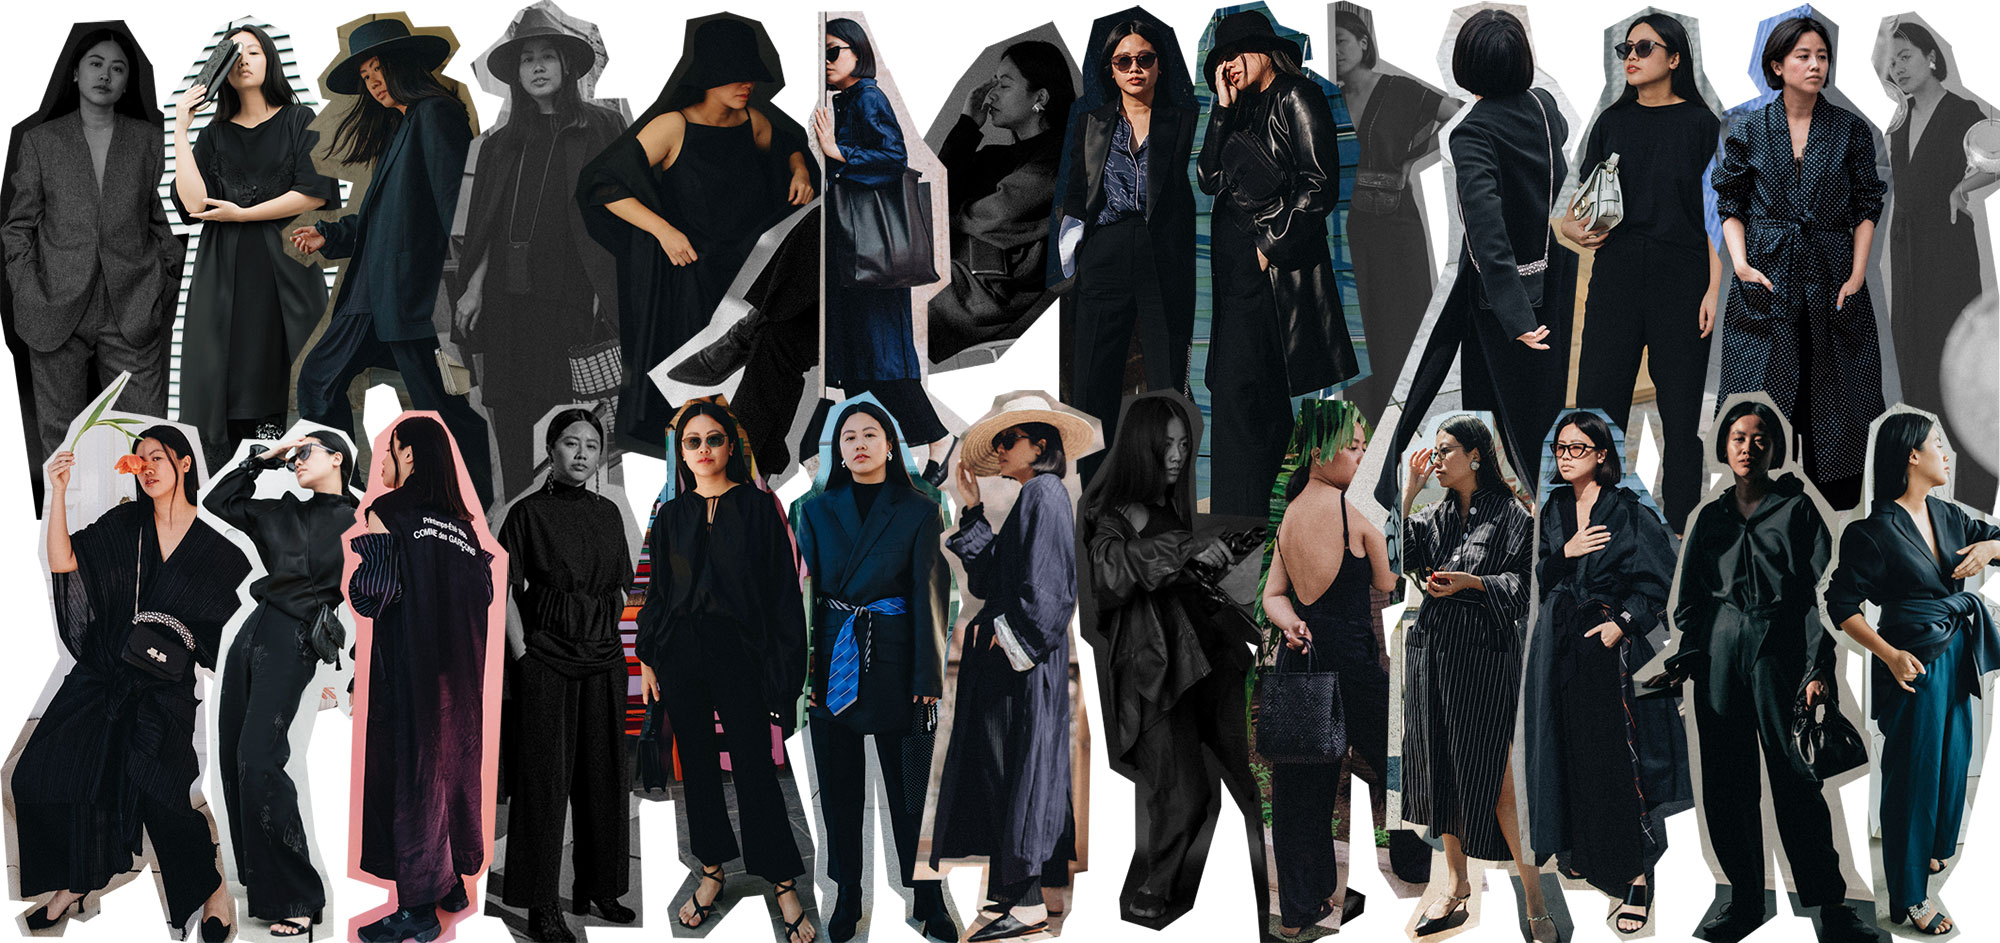 All Black Everything Looks of 2019 by Alice M. Huynh / iHeartAlice.com - Travel, Lifestyle & Fashionblog